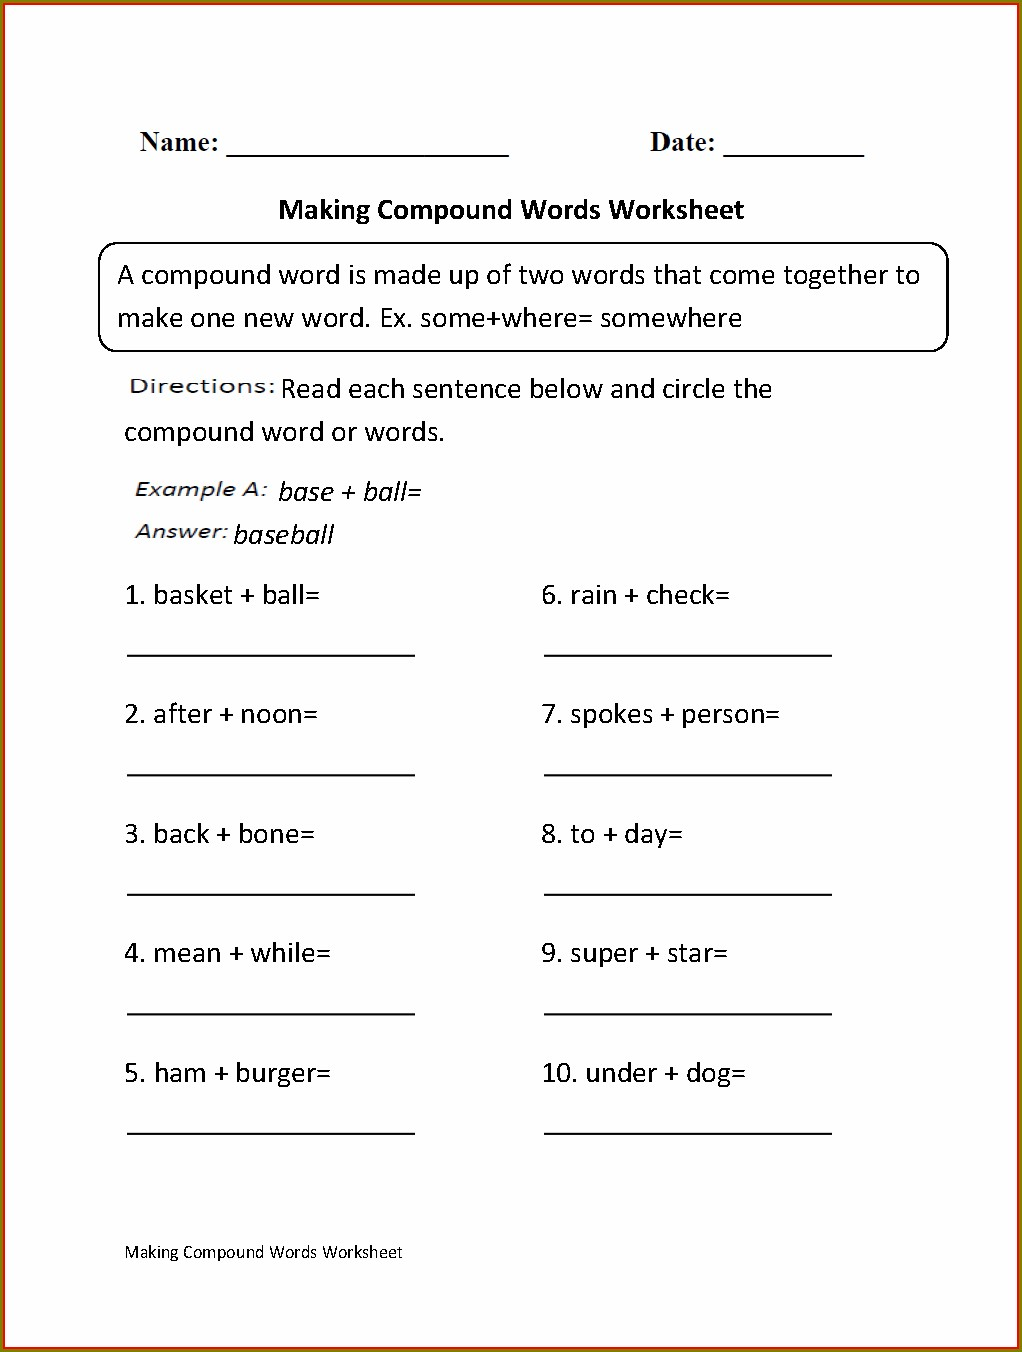 Compound Words Worksheet For Grade 8